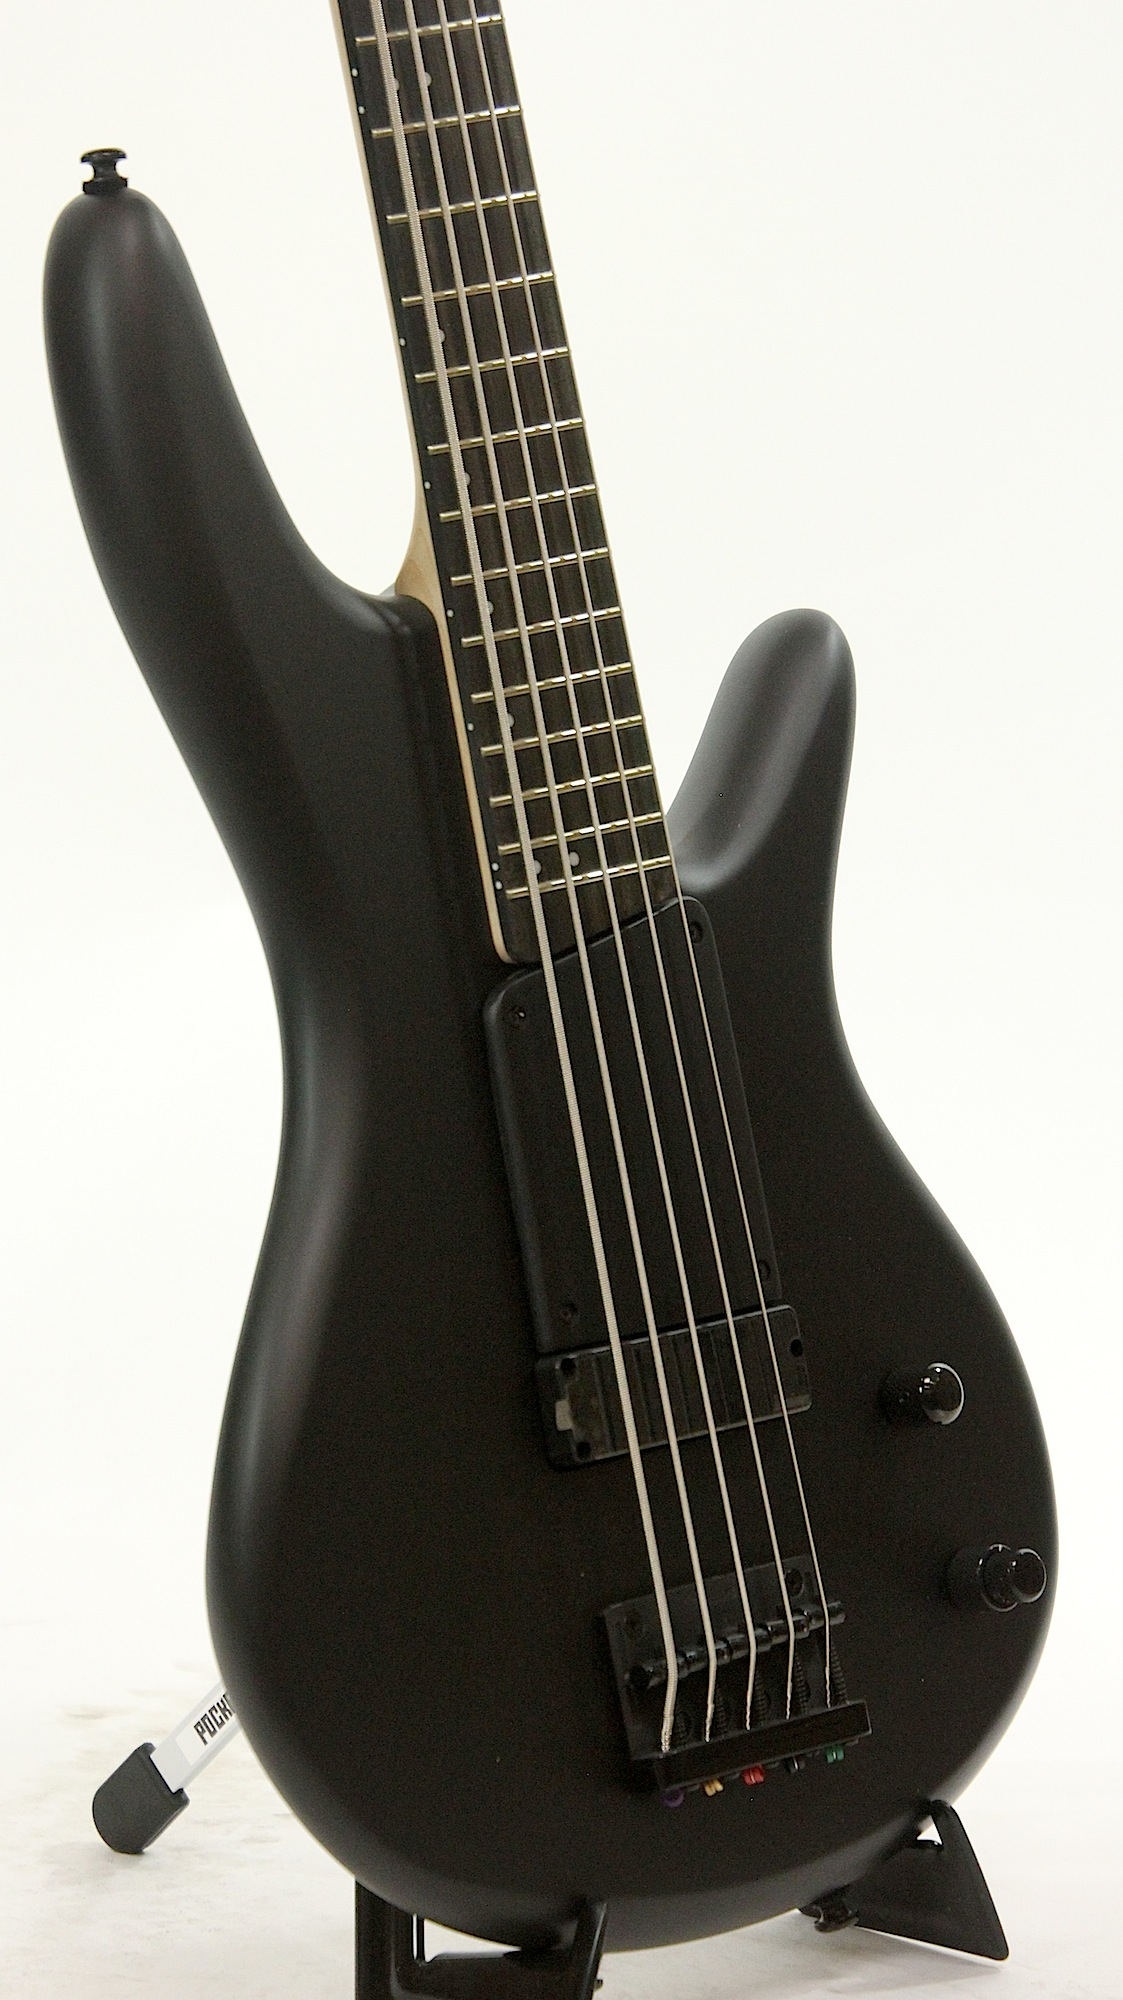 ibanez gwb35fd bkf gary willis black flat 5 string bass guitar 6. Black Bedroom Furniture Sets. Home Design Ideas